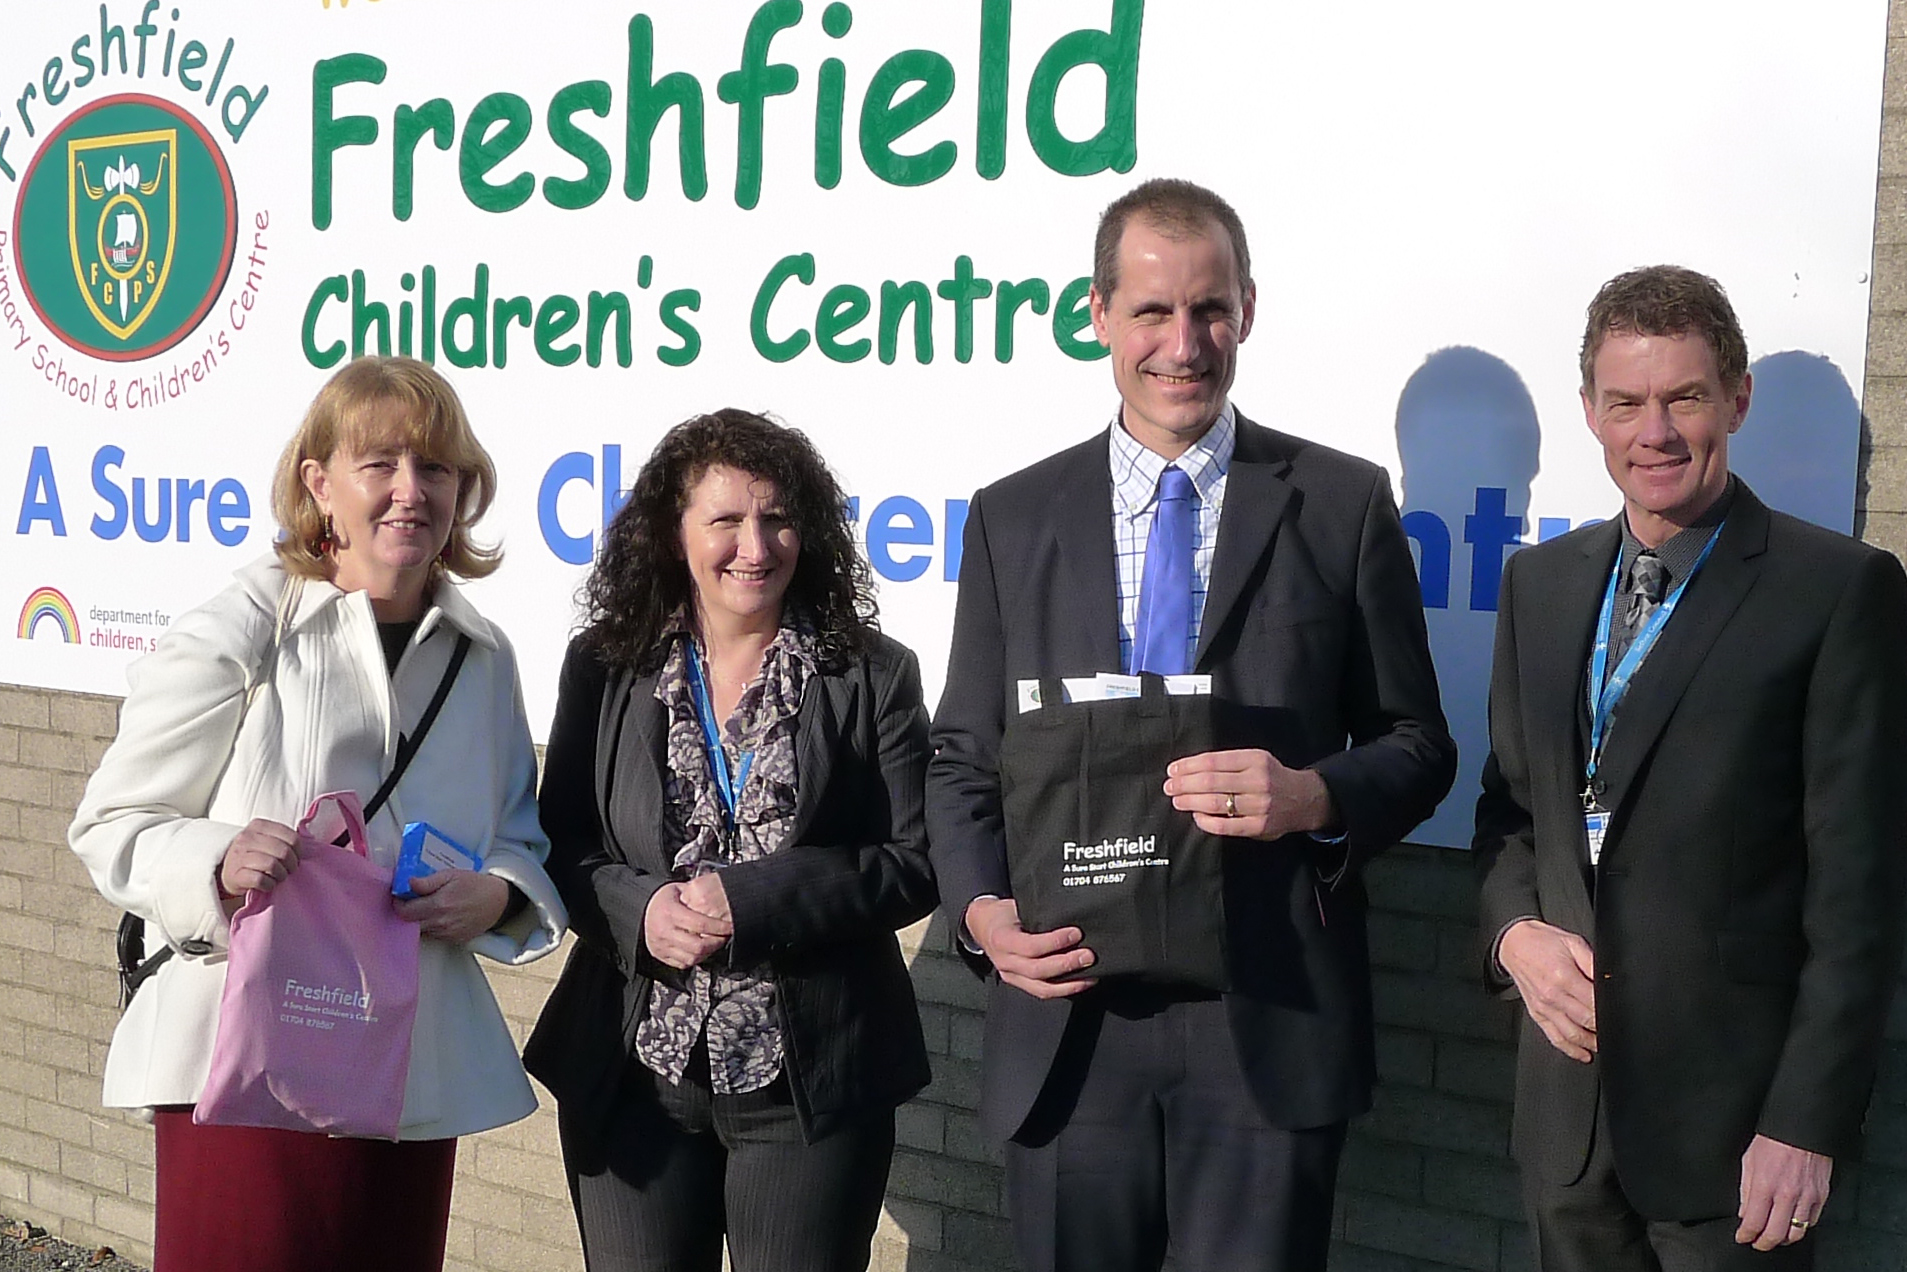 Catie Page and Bill Esterson with Freshfields Children's Centre staff